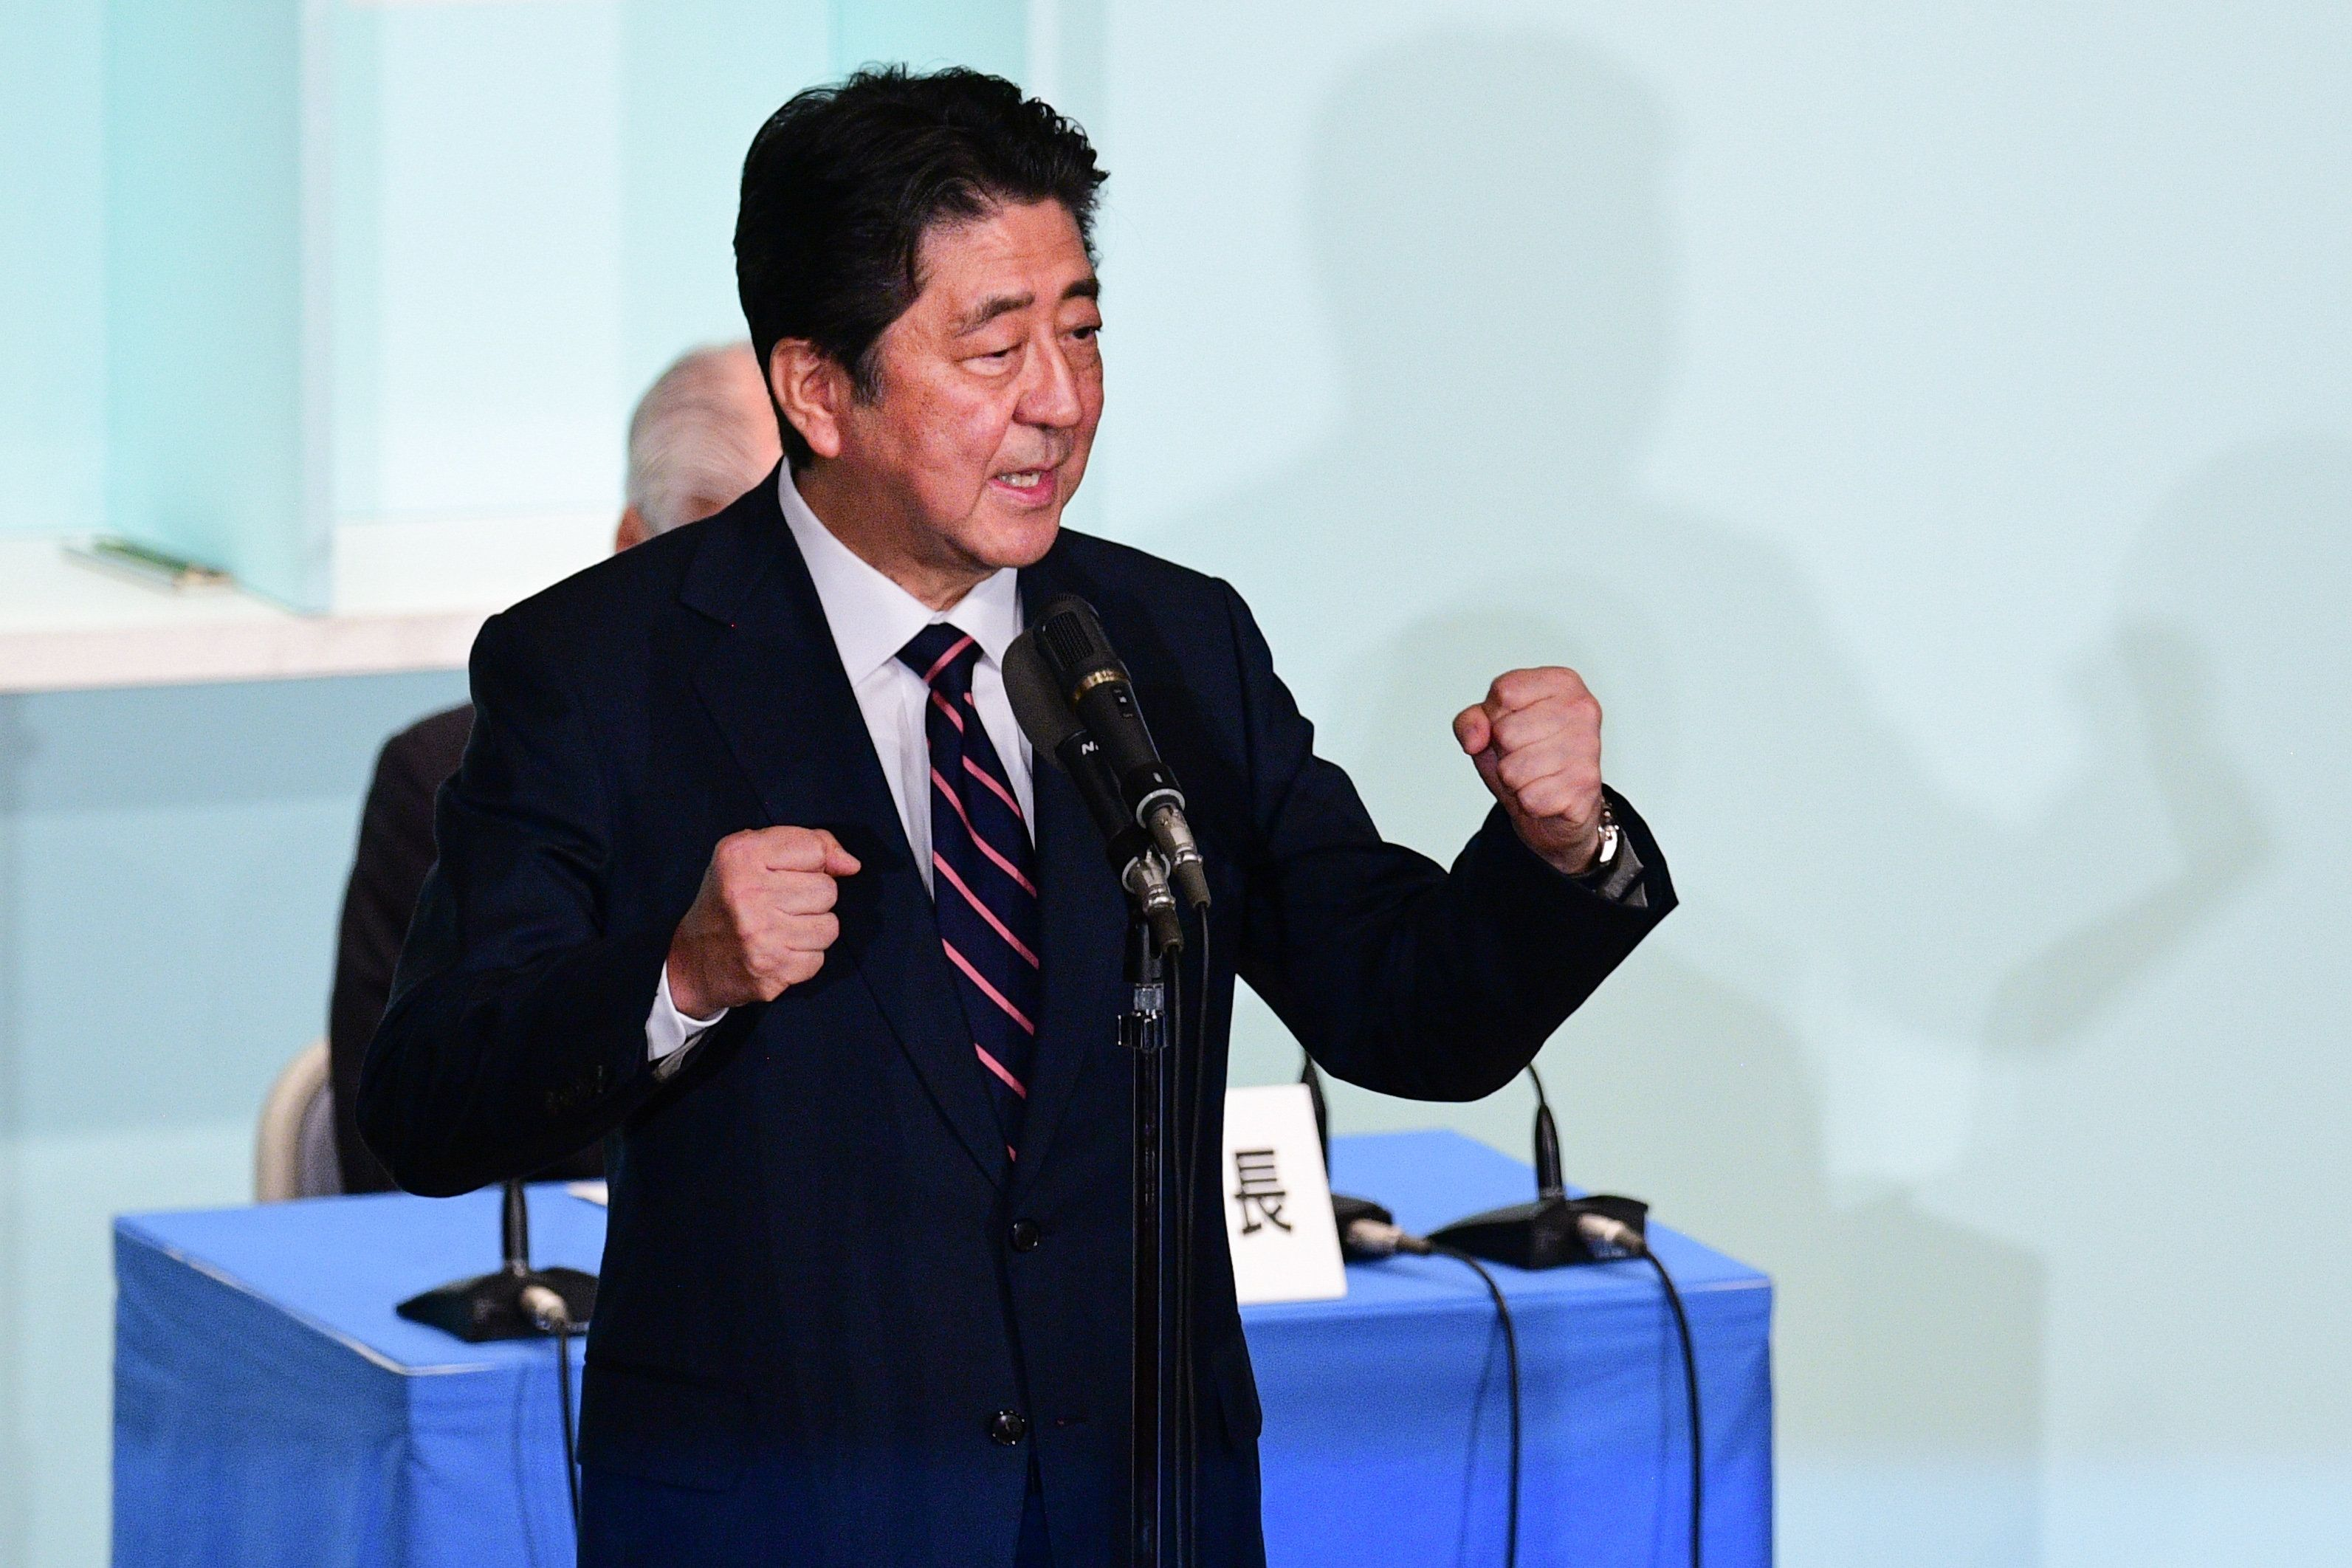 Japan's Prime Minister Shinzo Abe delivers a speech during the ruling liberal Democratic Party (LDP) leadership election at the party's headquarters in Tokyo on September 20, 2018. - Prime Minister Shinzo Abe won re-election as leader of his ruling party on September 20, setting him on course to become Japan's longest-serving premier and realise his dream of reforming the constitution. (Photo by Martin BUREAU / AFP)        (Photo credit should read MARTIN BUREAU/AFP/Getty Images)